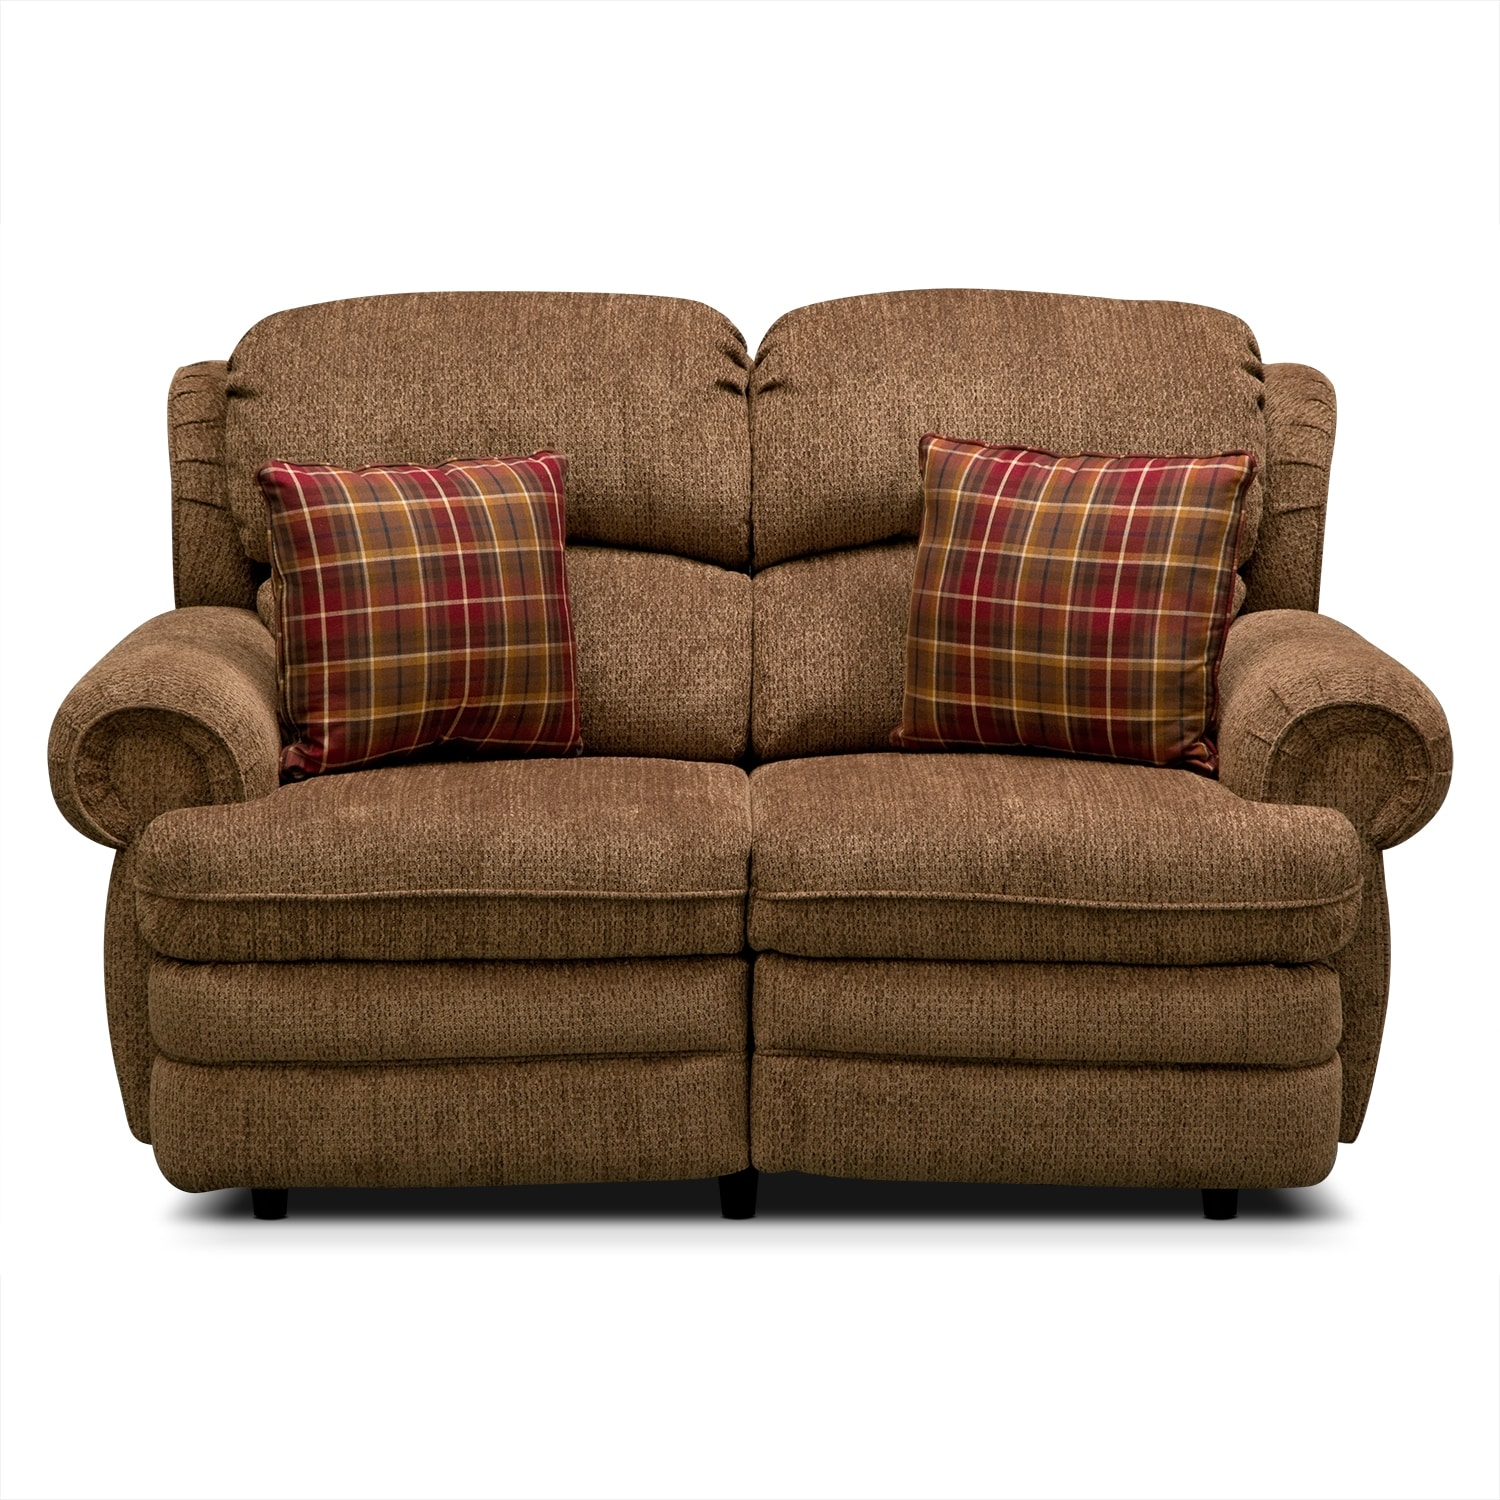 Laconia reclining loveseat Loveseats that recline